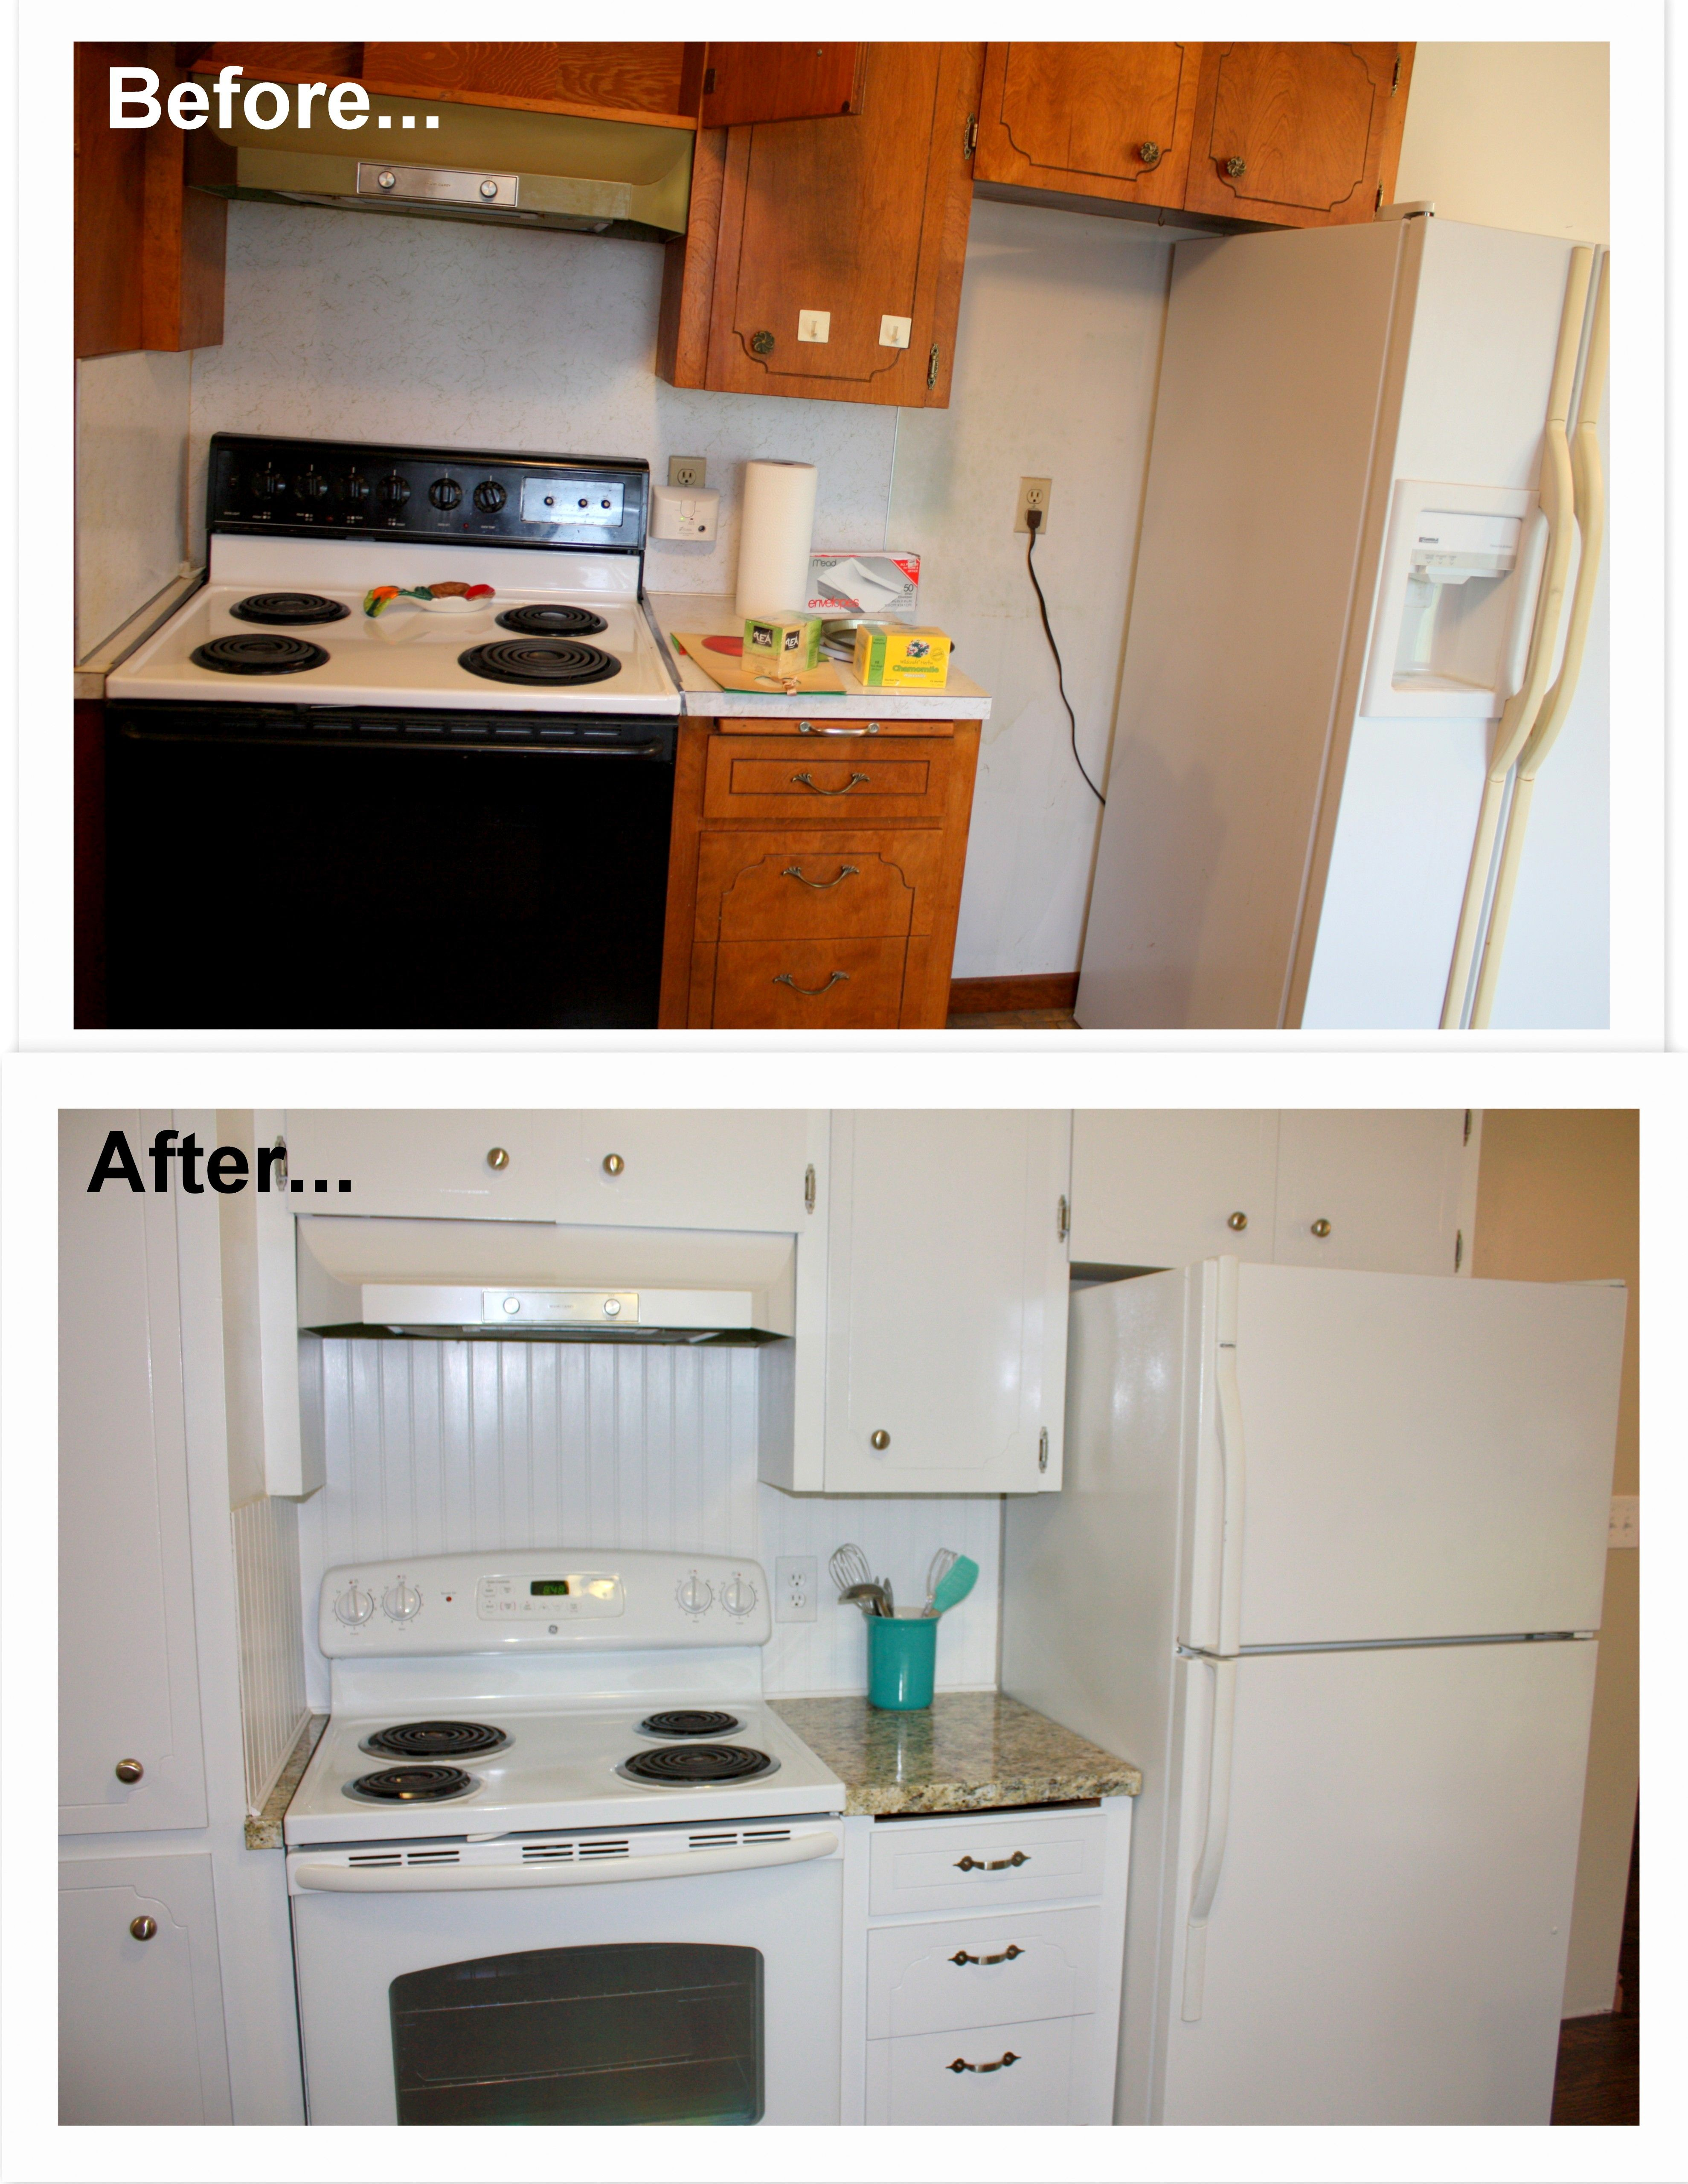 1960s Kitchen Remodel Before After: 1960's Kitchen Makeover Remodel Before And After. Hardwood